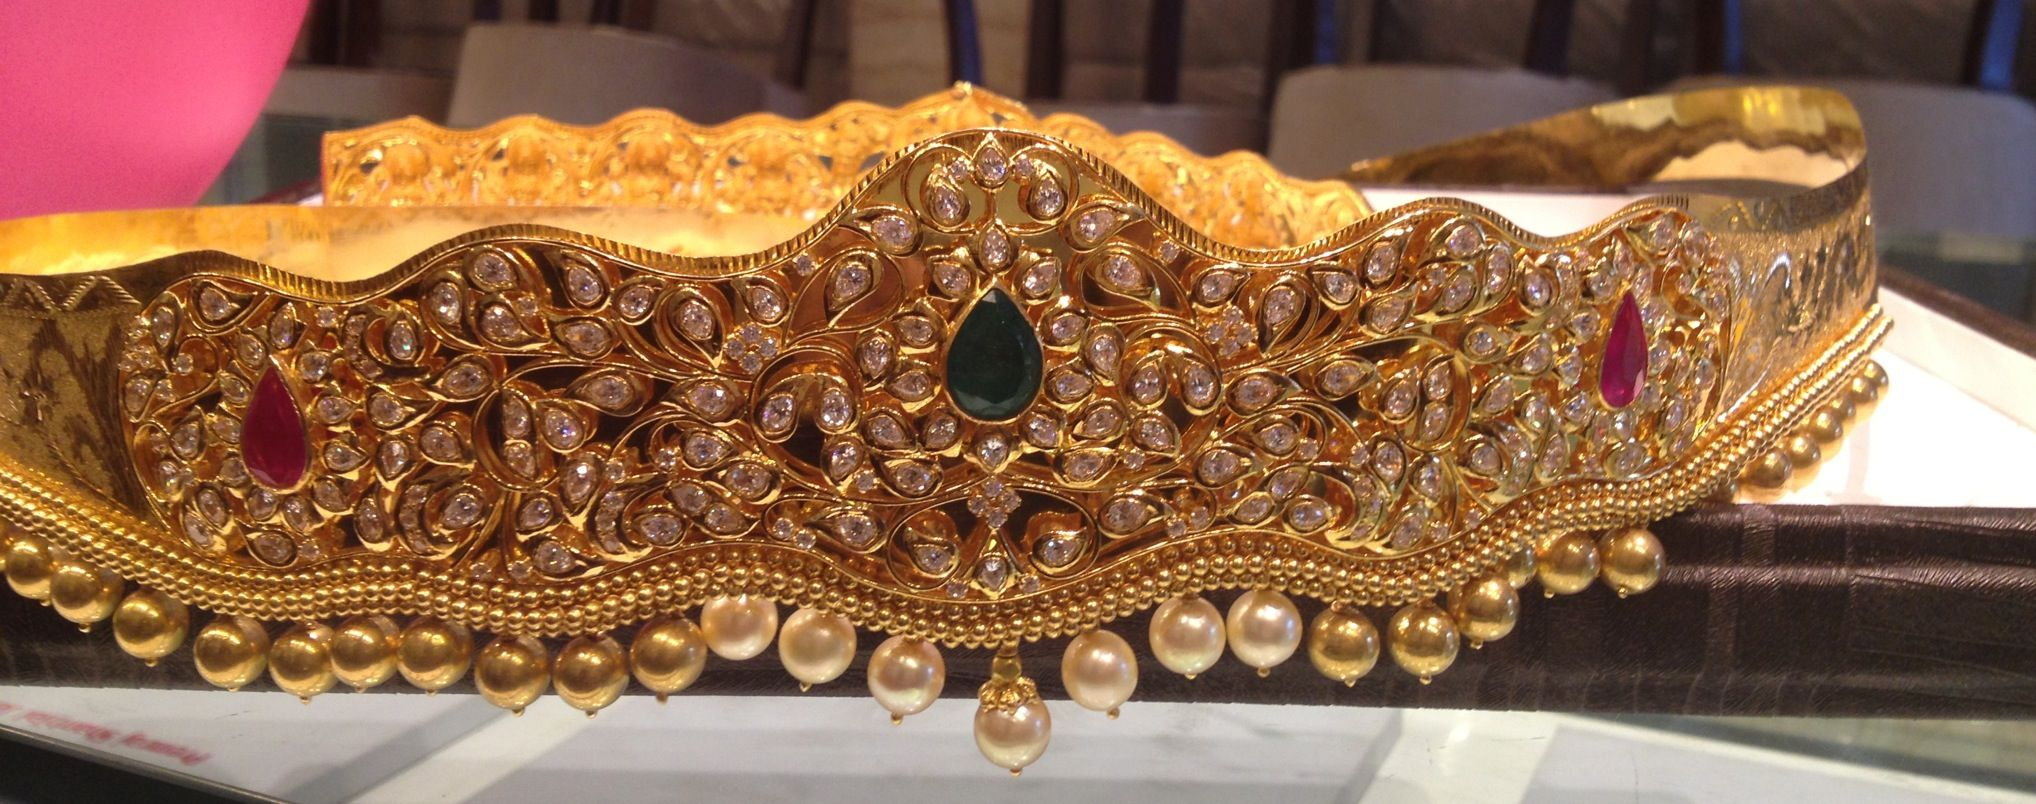 Gold vaddanam oddiyanam kammarpatta waisbelt designs south indian - South Indian Uncut Diamond Waist Belt